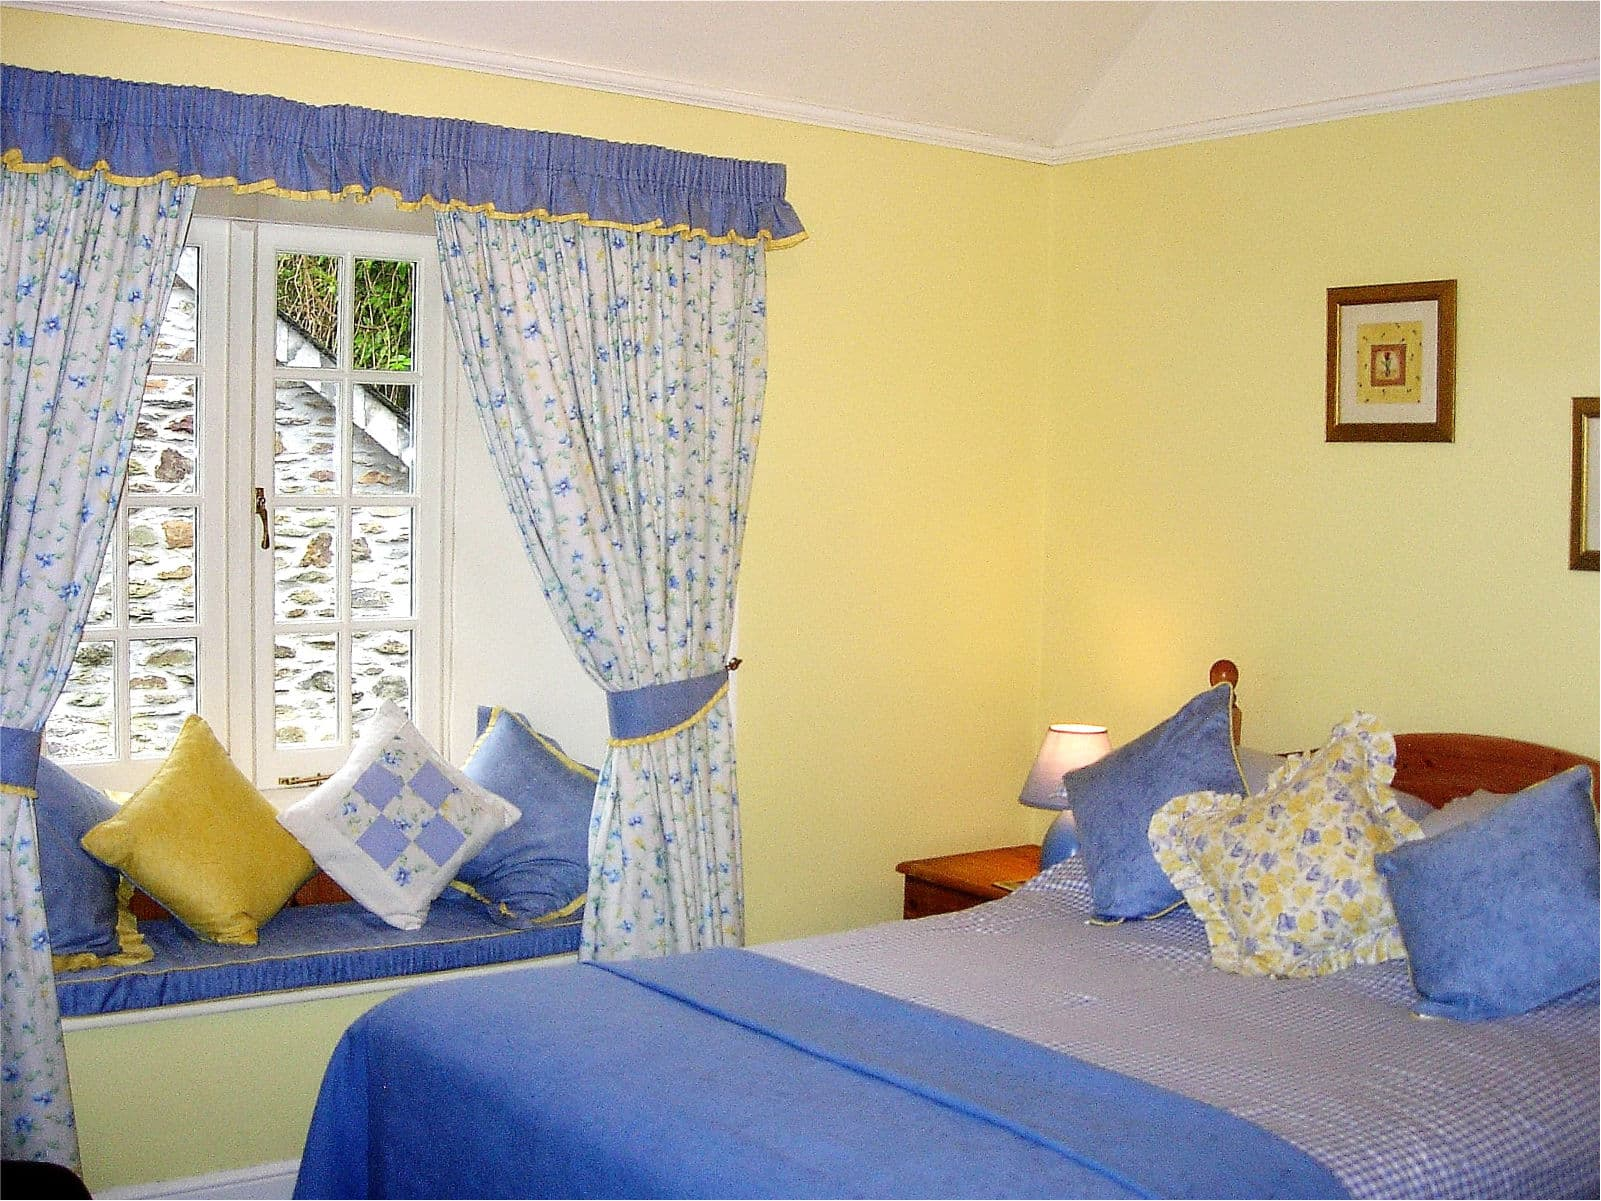 Primrose Bedroom at Polraen Country House